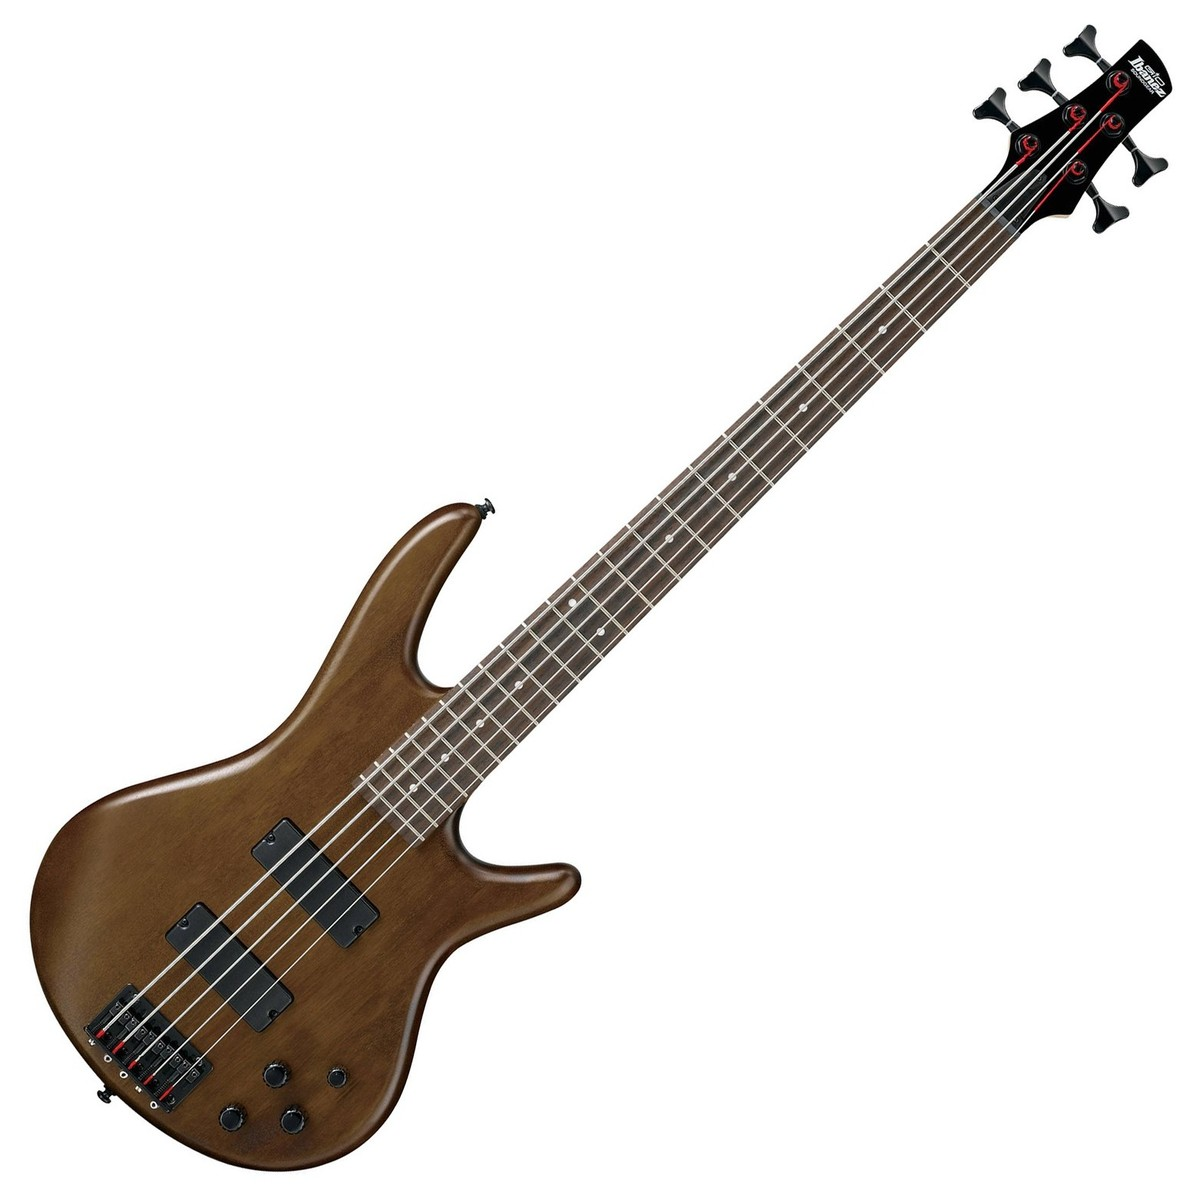 ibanez gio gsr205b 5 string bass guitar walnut flat at. Black Bedroom Furniture Sets. Home Design Ideas